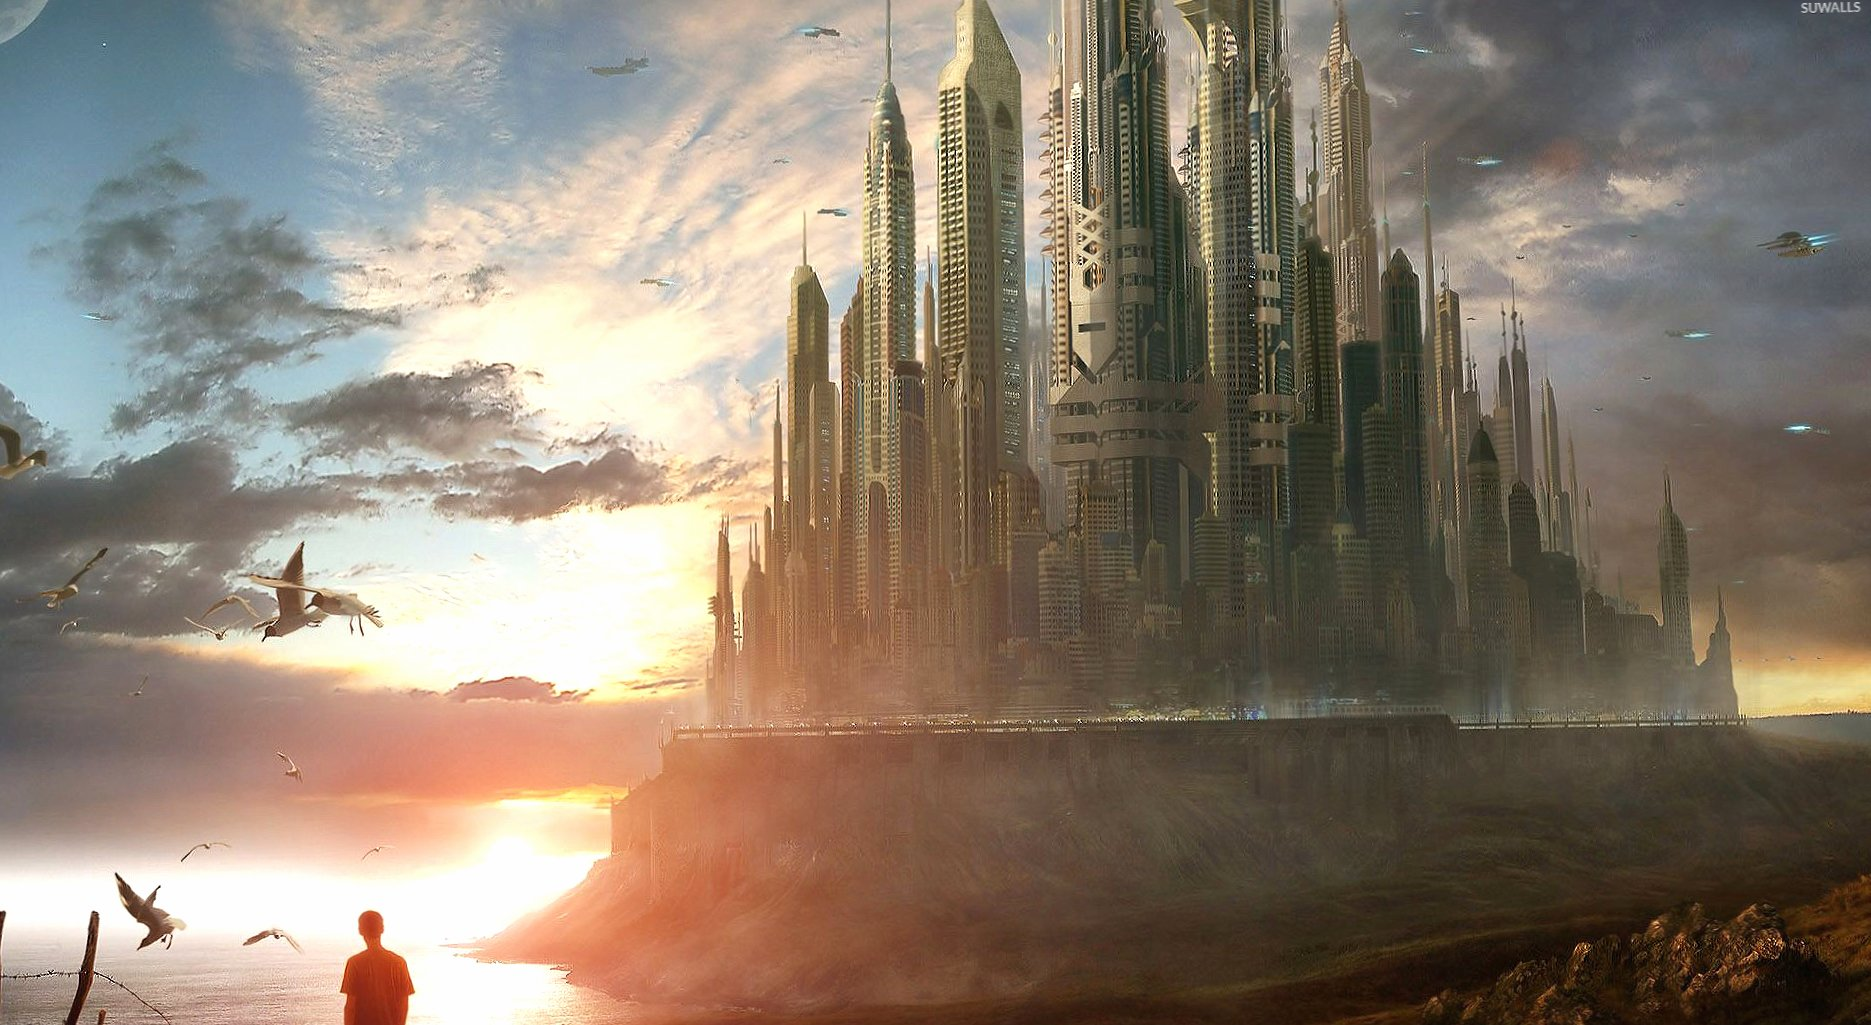 Sci-Fi castle in the light wallpapers HD quality